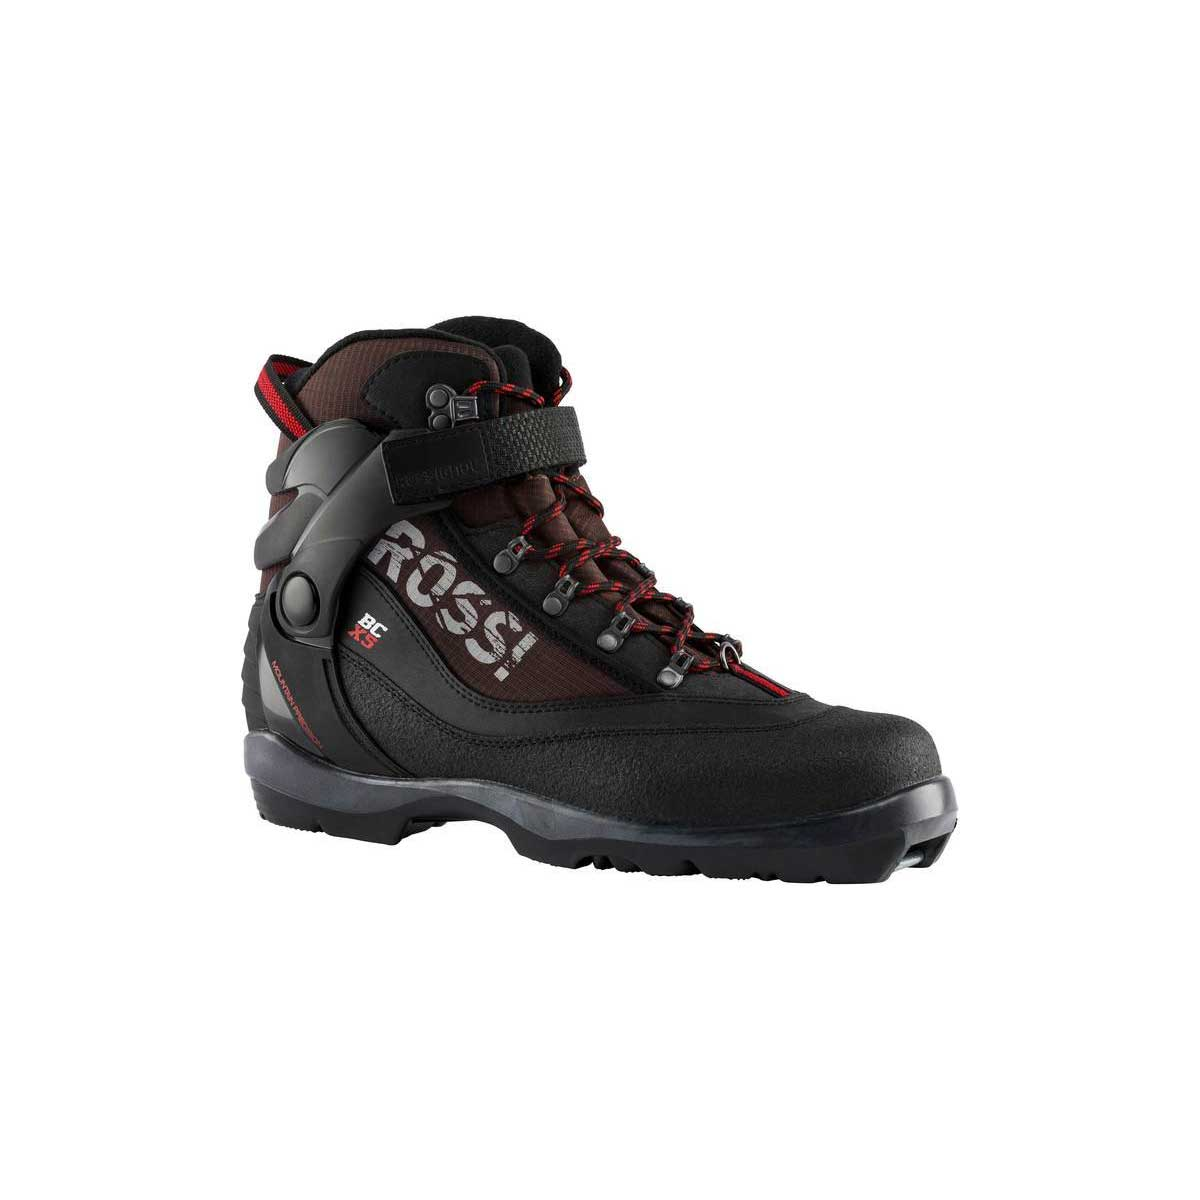 Rossignol Men's BC X5 Boot in Black and Red